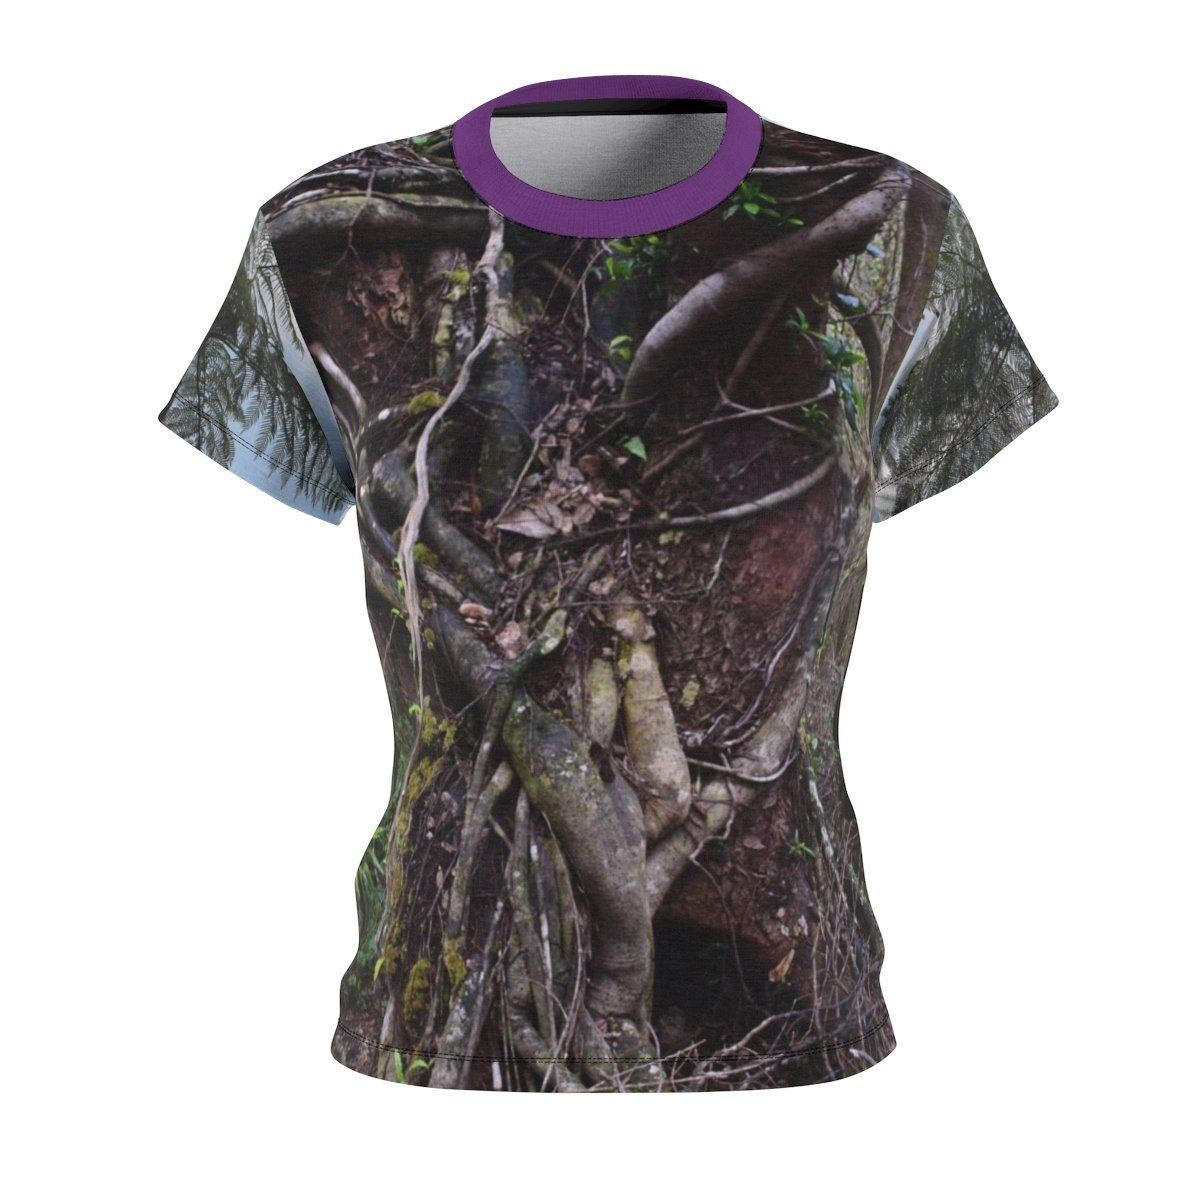 Women's AOP Cut & Sew Tee - Ancient Colorado Tree and view of Rio Sabana park - El Yunque All Over Prints Printify